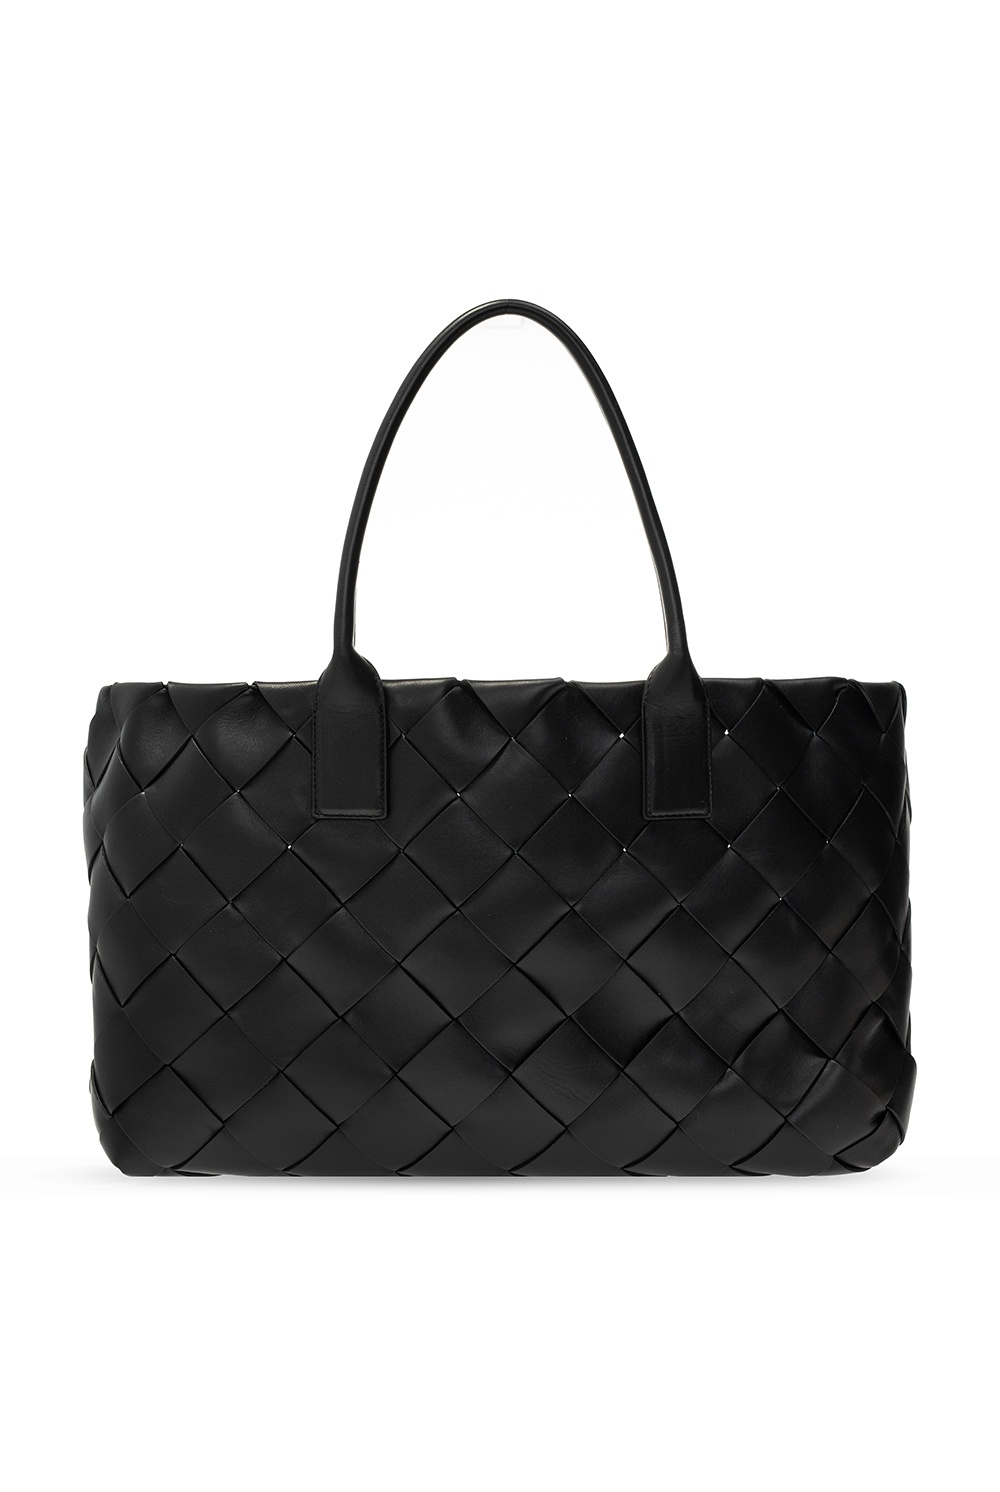 Bottega Veneta Shopper bag